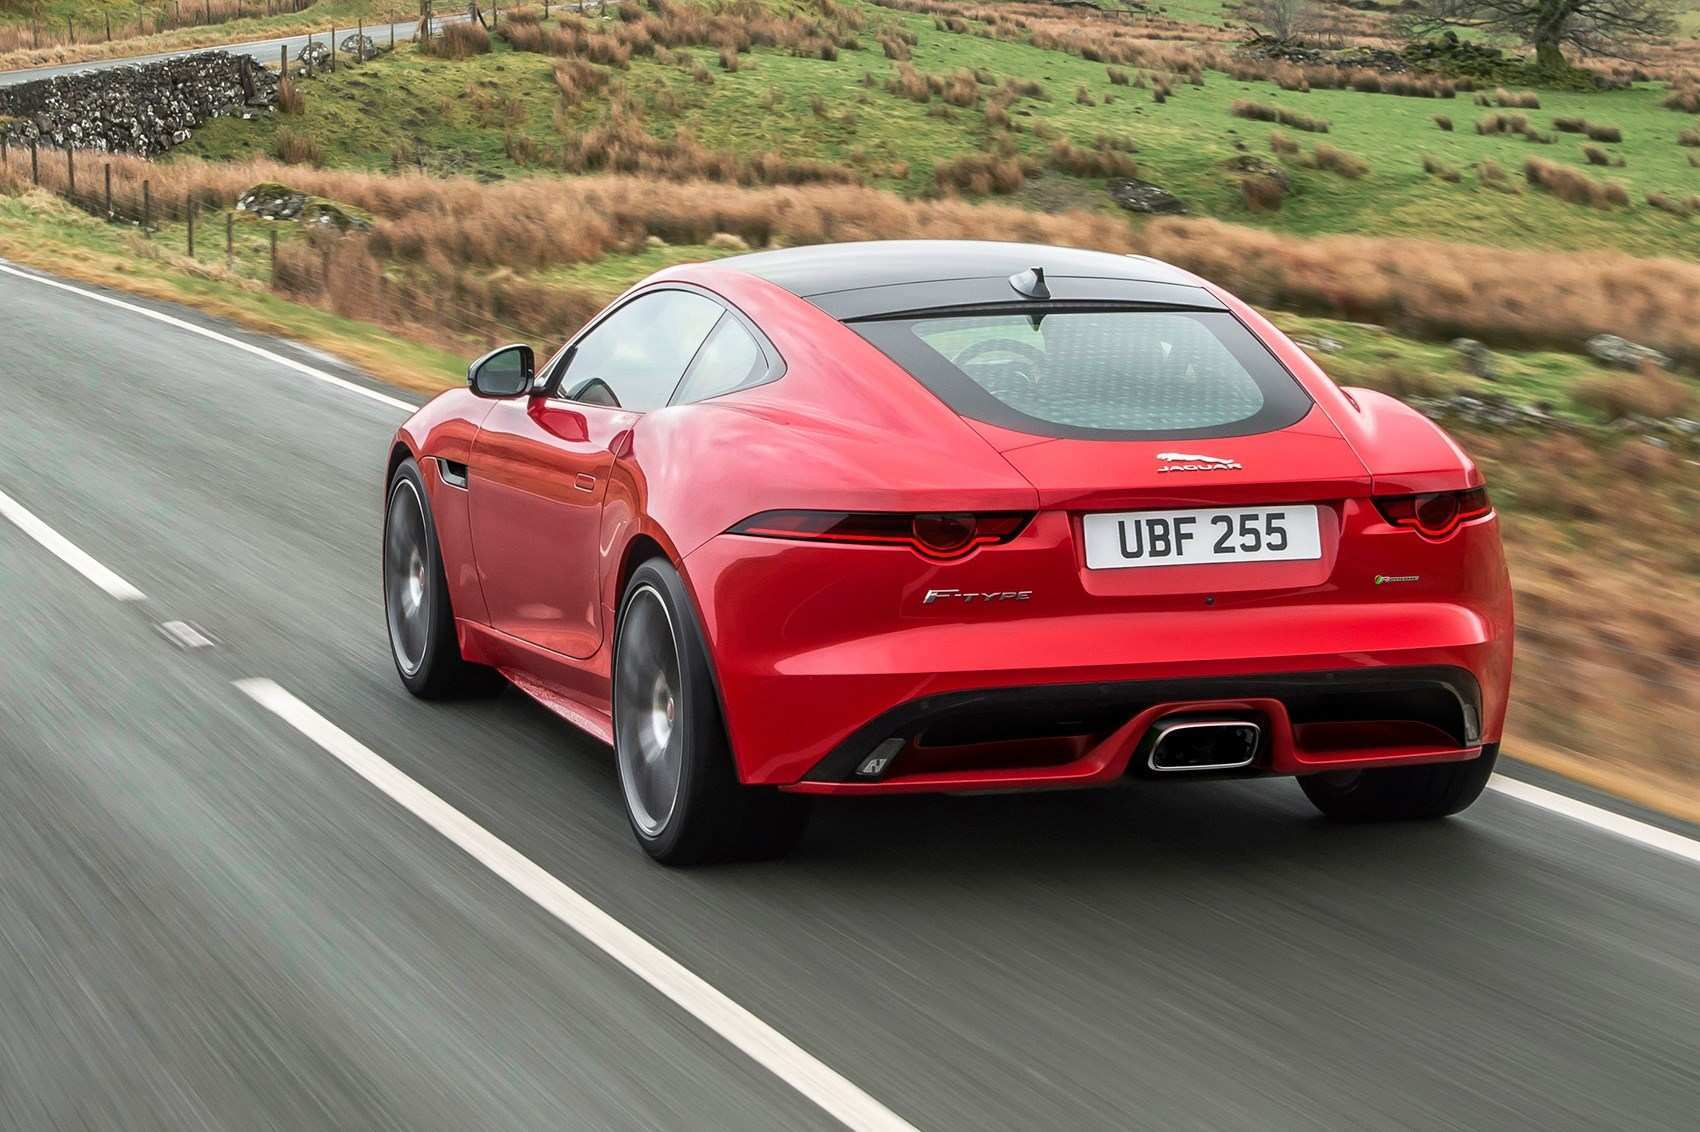 12 Gallery of Jaguar F Type 2020 First Drive for Jaguar F Type 2020